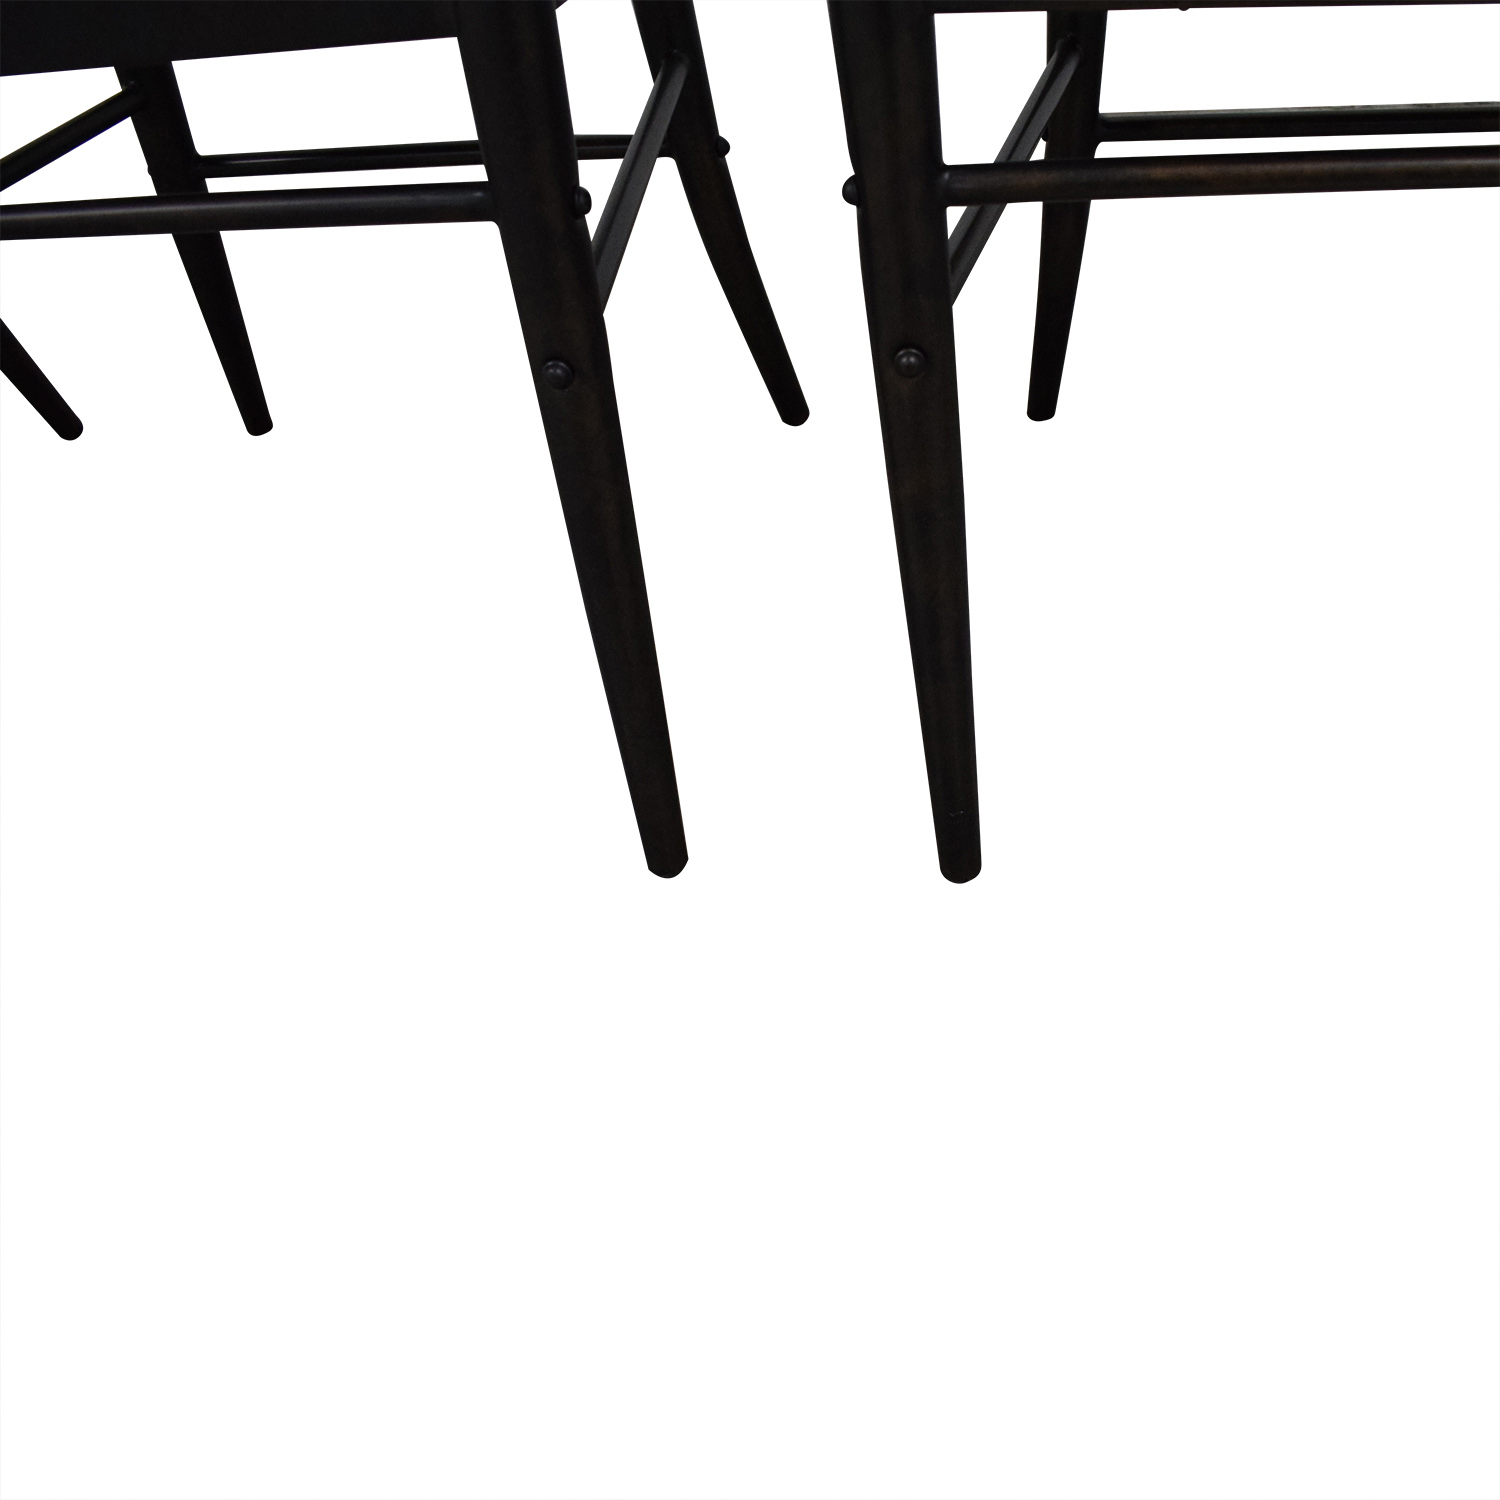 Crate & Barrel Crate & Barrel Ladder Back Dining Chairs on sale